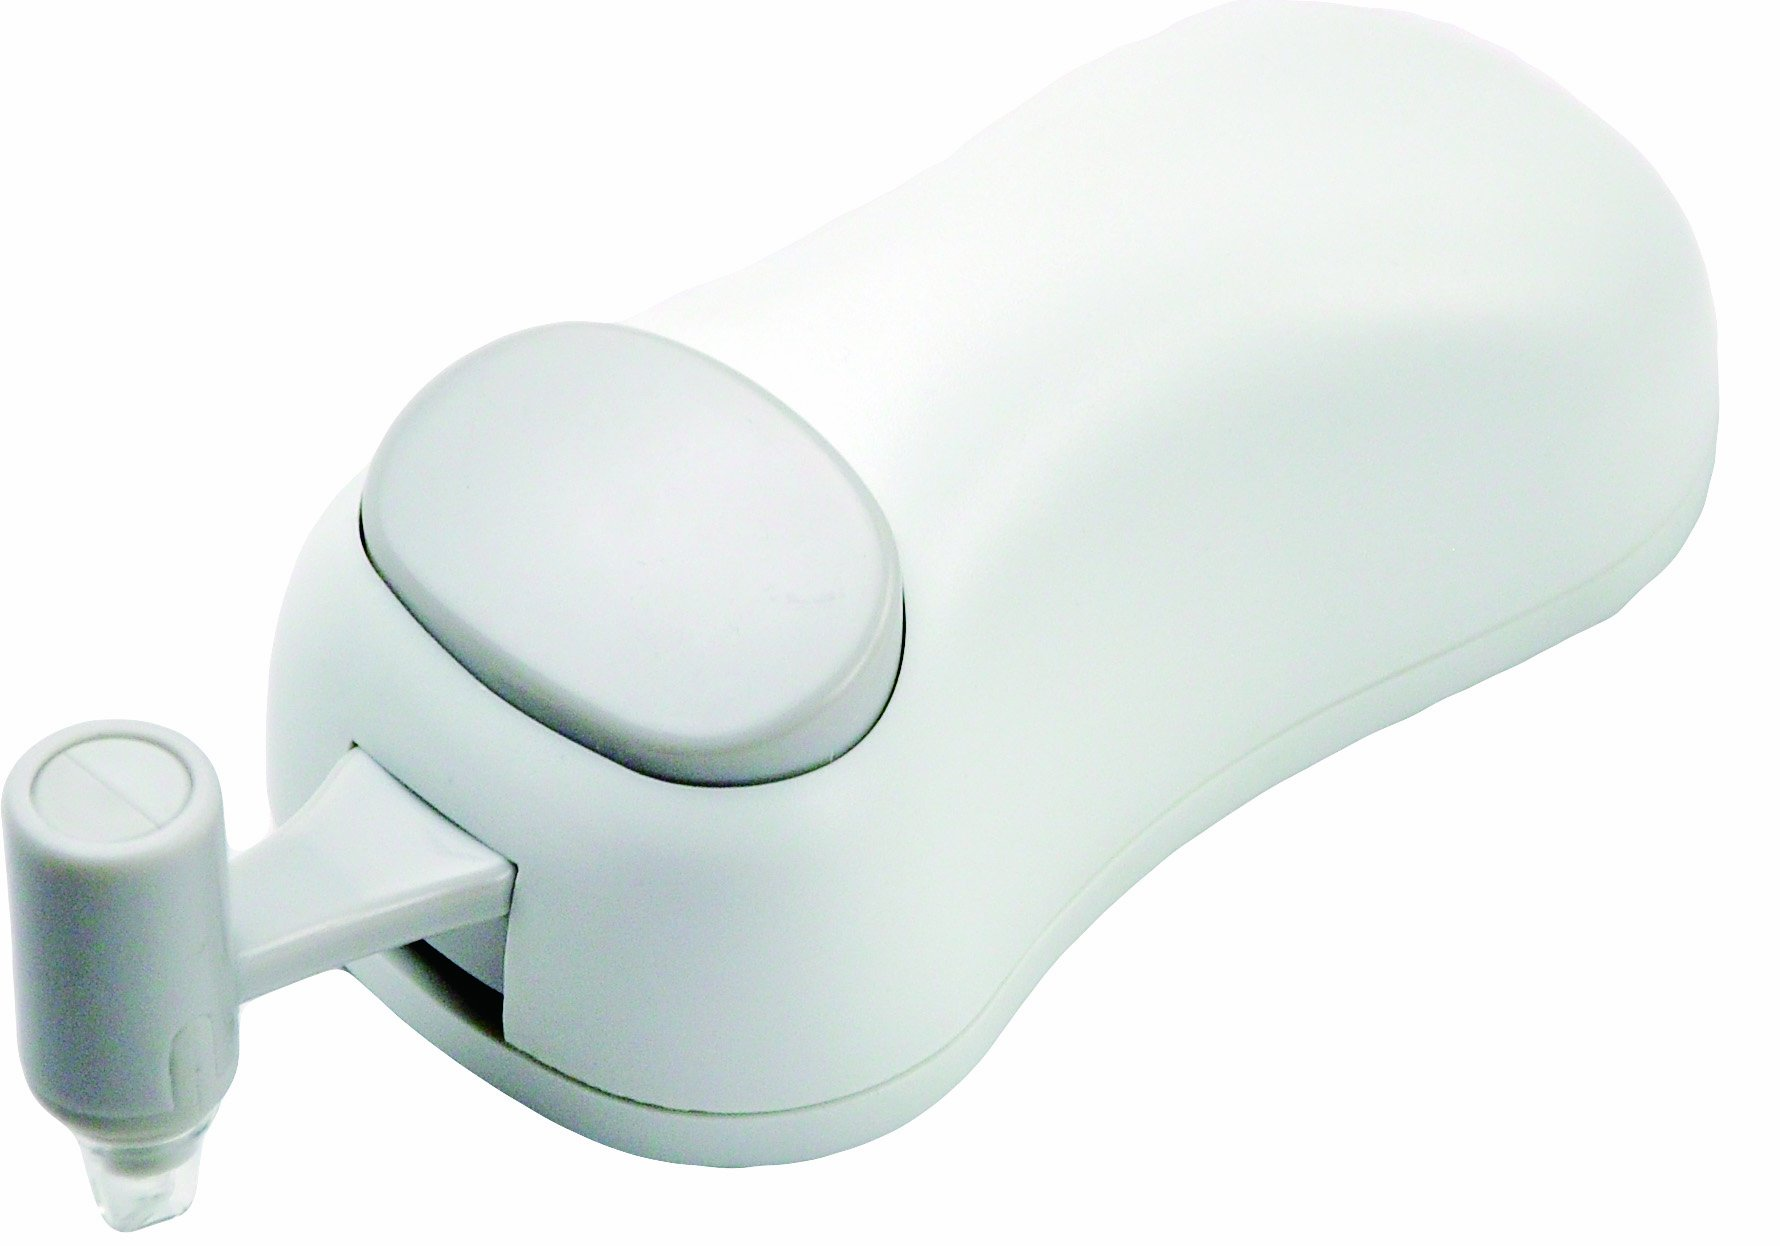 HARAC Handy Manual Paper Line Safety Cutter D-LINE (White) by HARAC